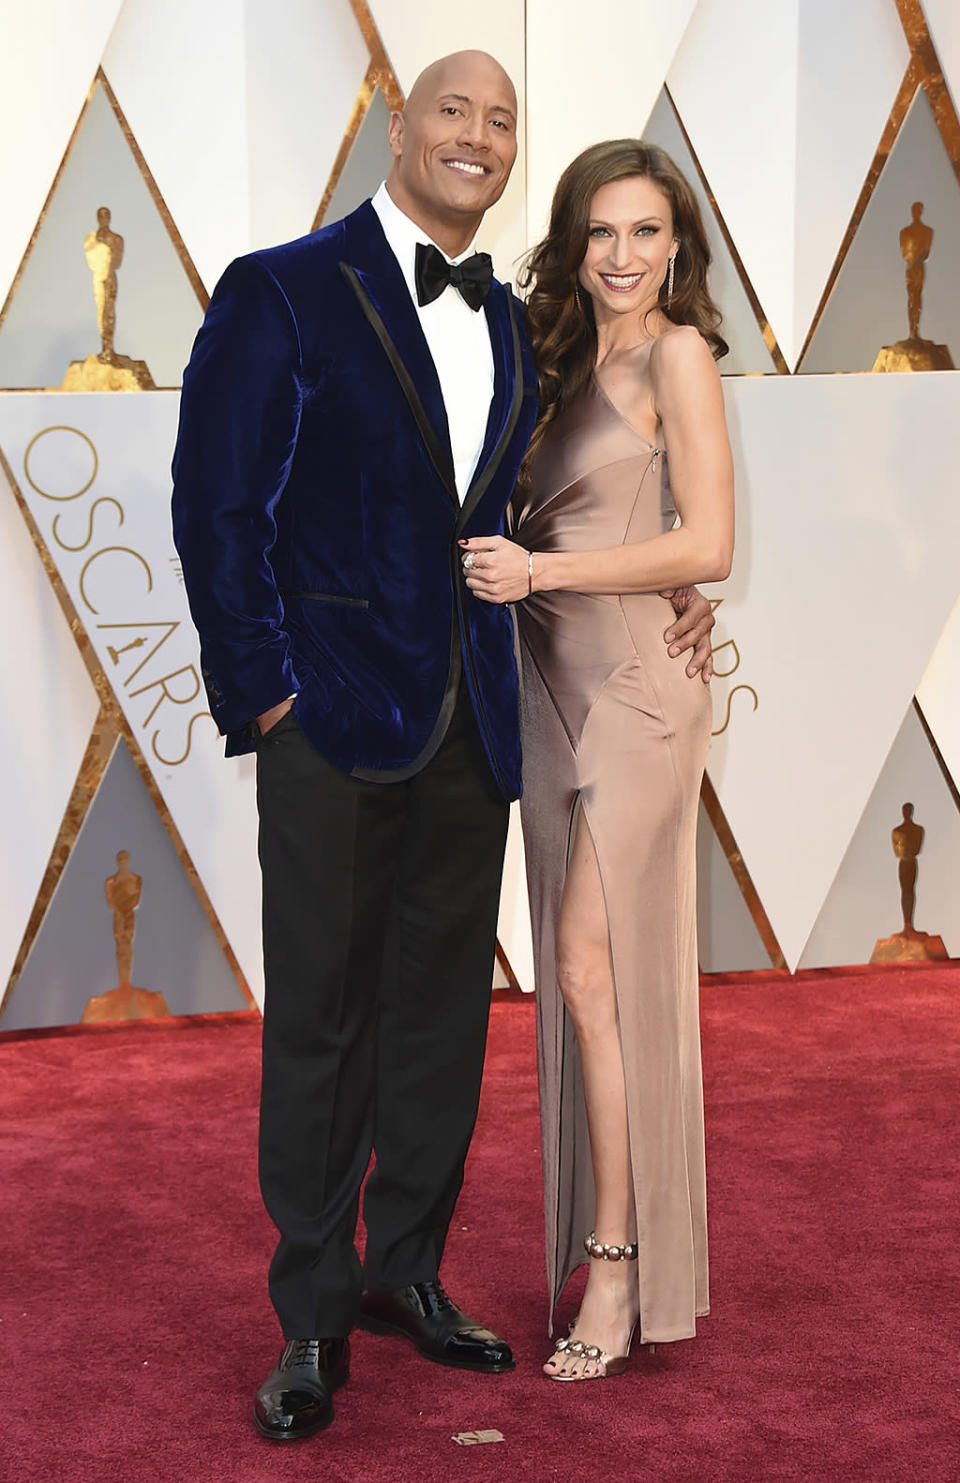 <p>Dwayne Johnson and Lauren Hashian arrive at the Oscars on Feb. 26, 2017. (Photo by Jordan Strauss/Invision/AP) </p>